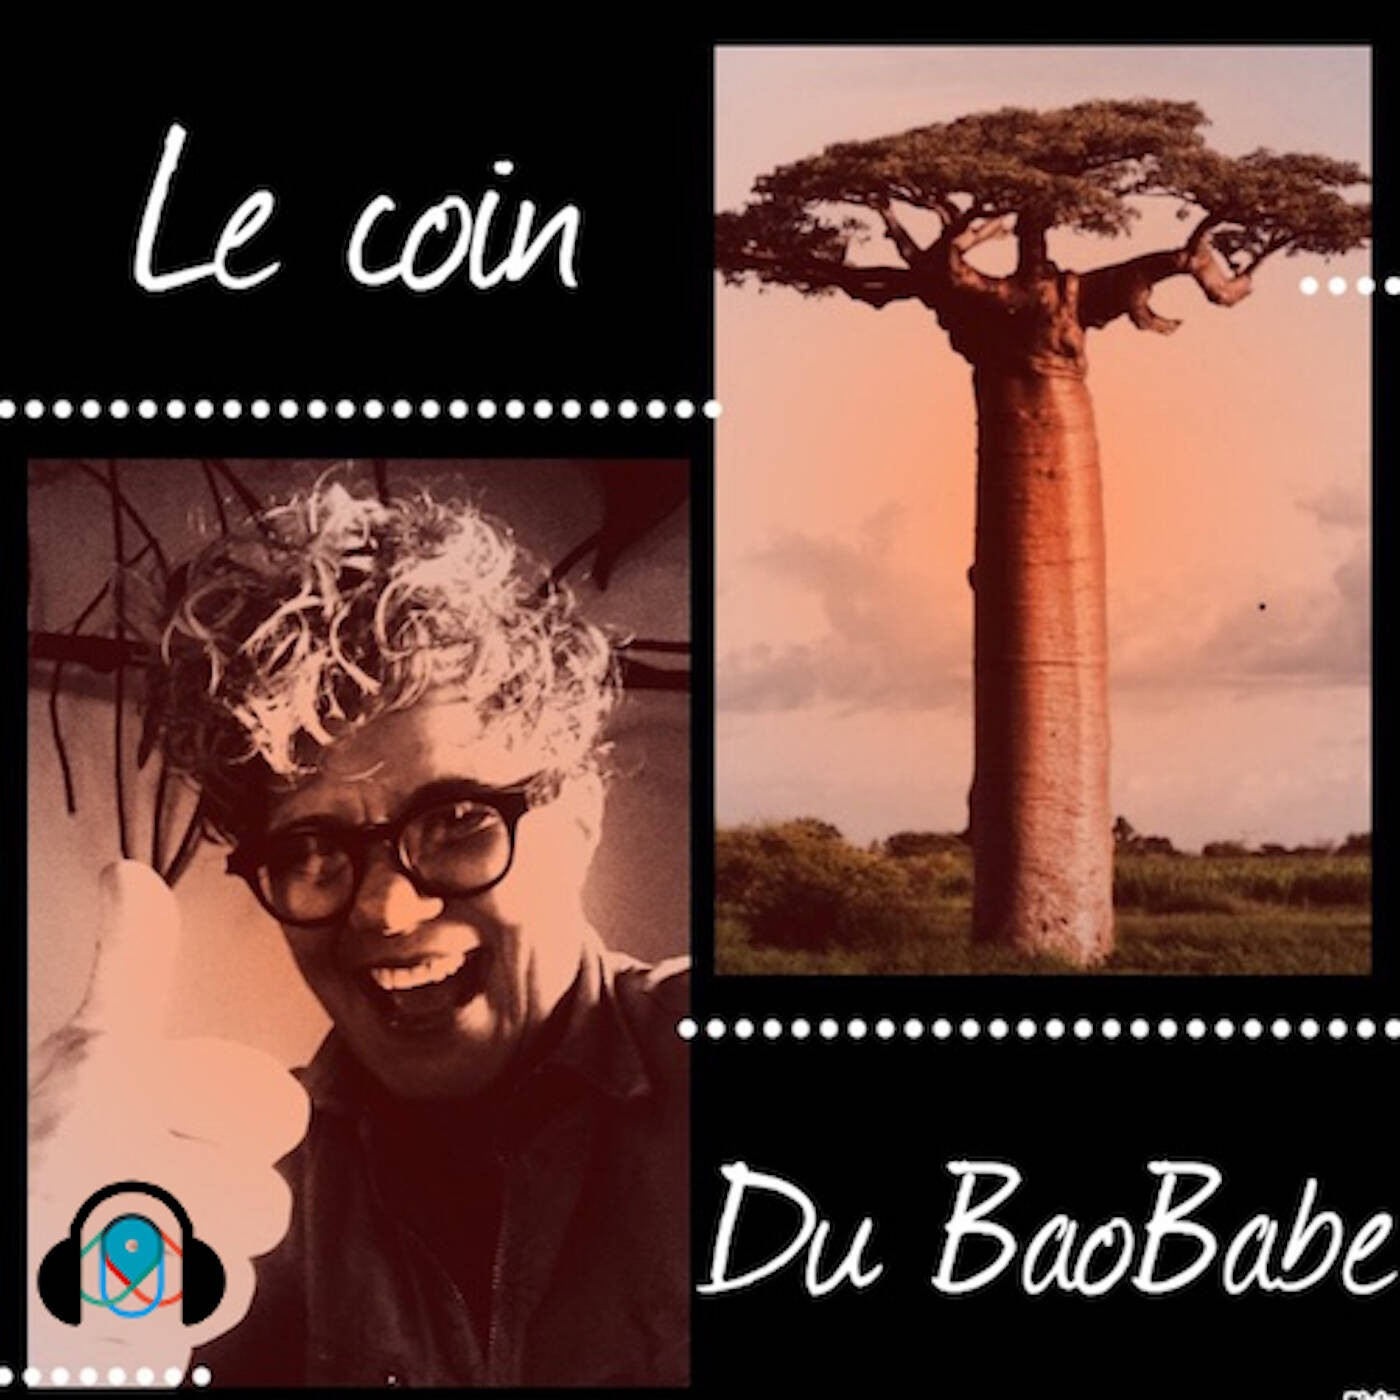 LE COIN DU BAOBABE S1E7 - Question de genre